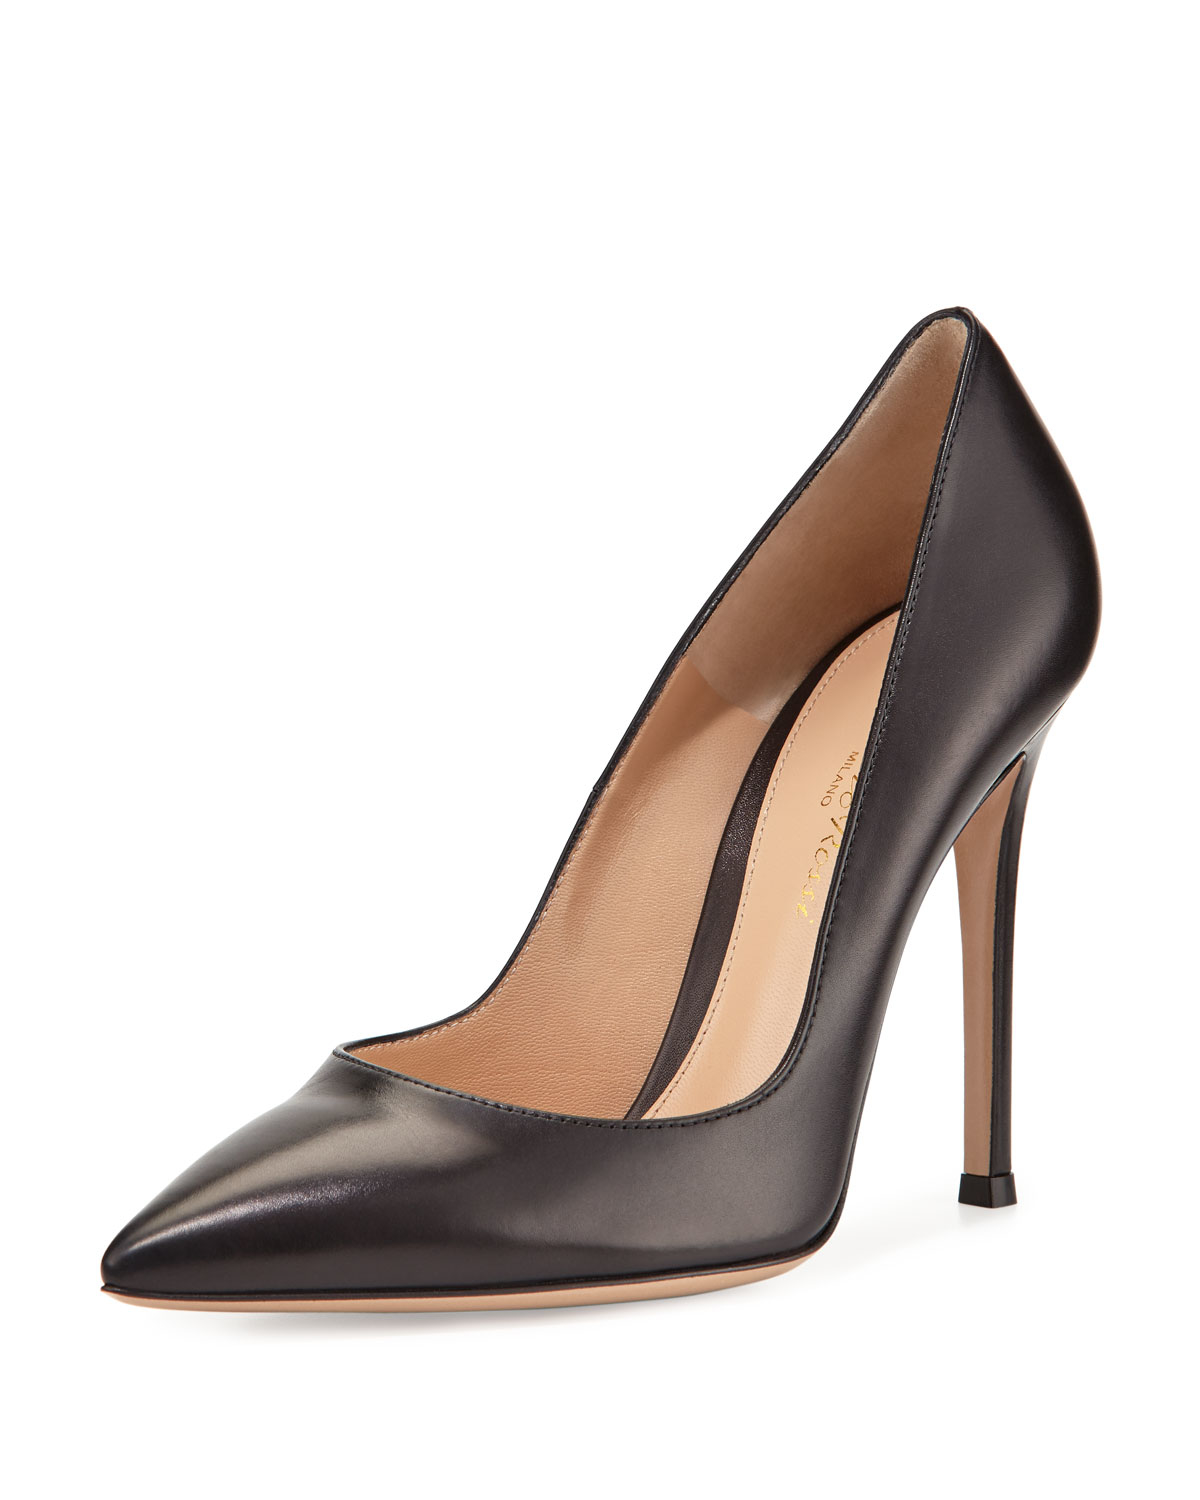 Find great deals on eBay for black leather pump. Shop with confidence.